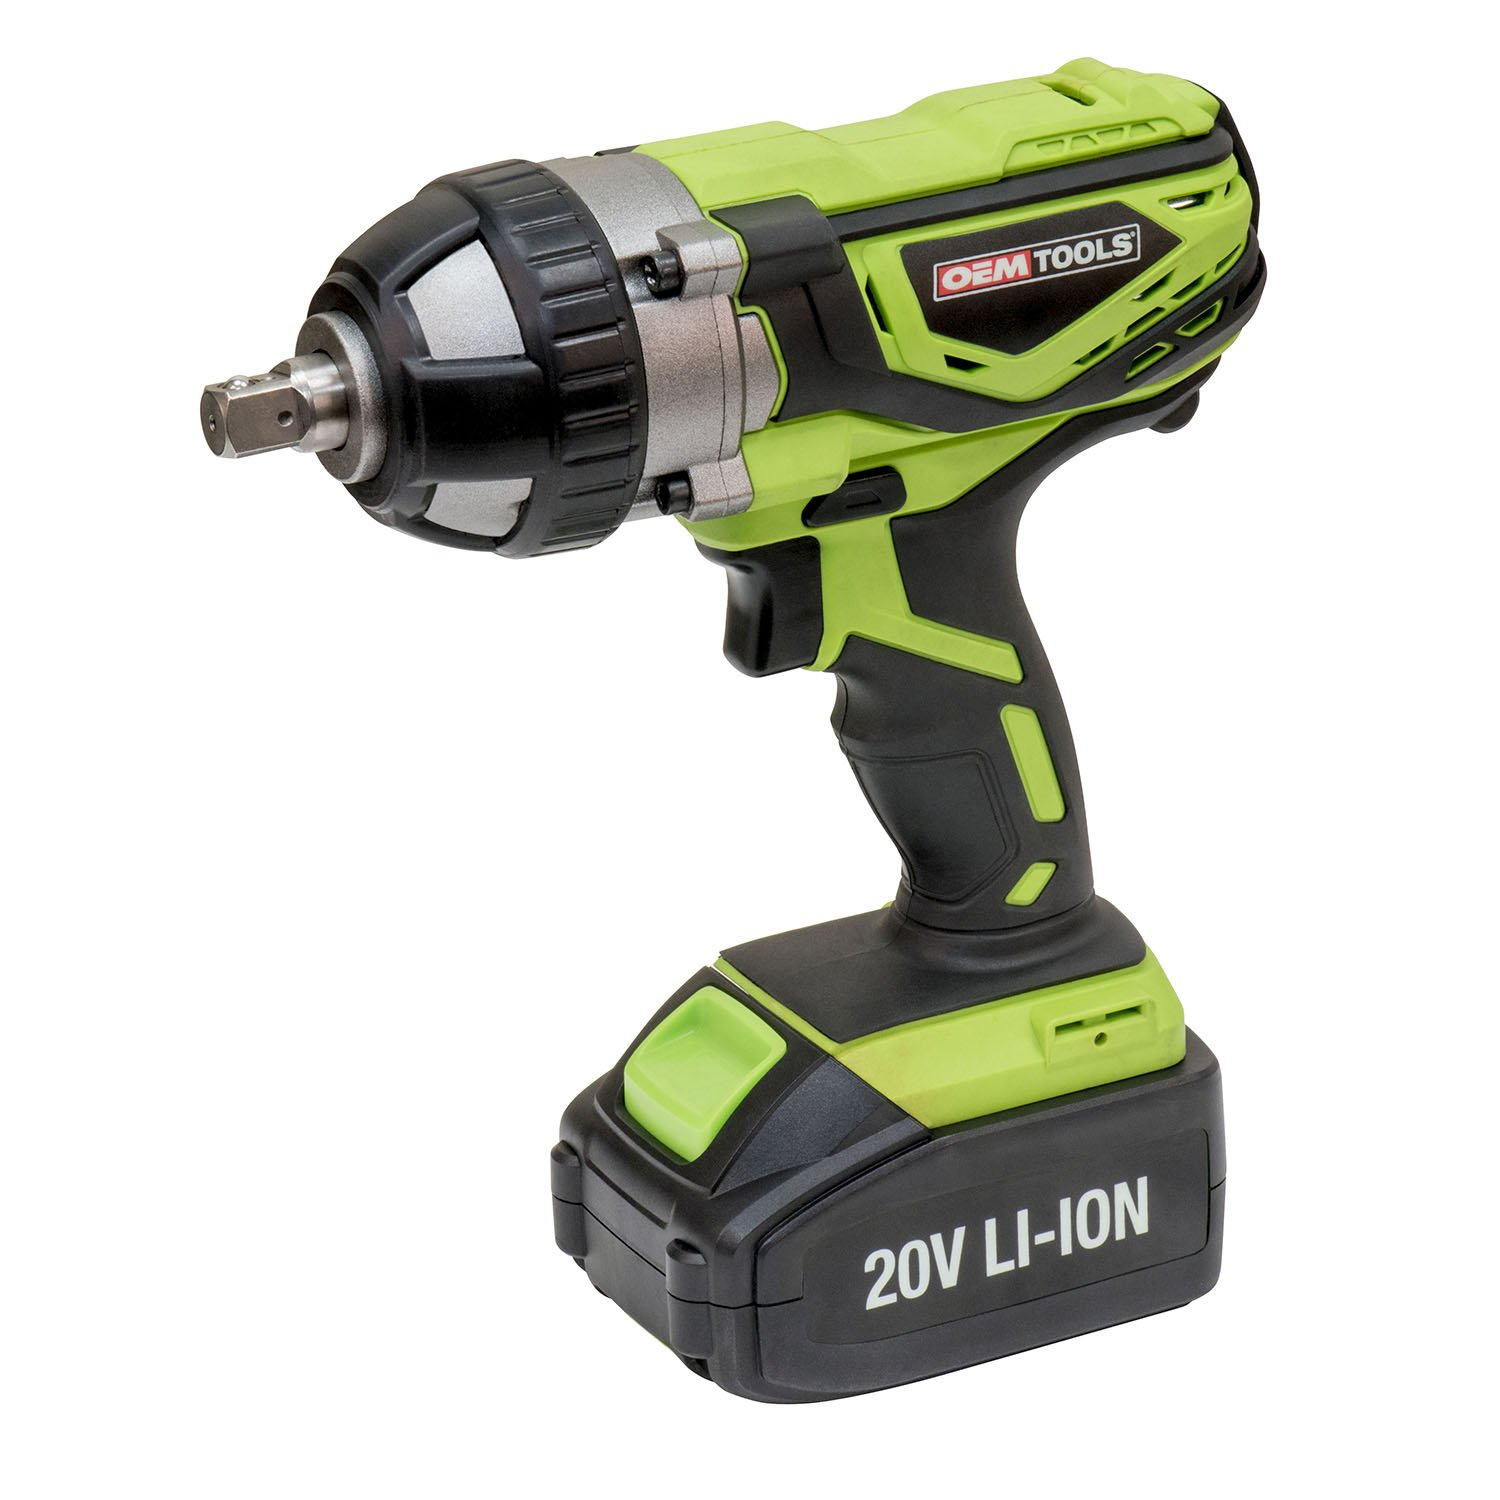 718%2B2SagQ1L._SL1500_ OEMTools Impact Wrench Review